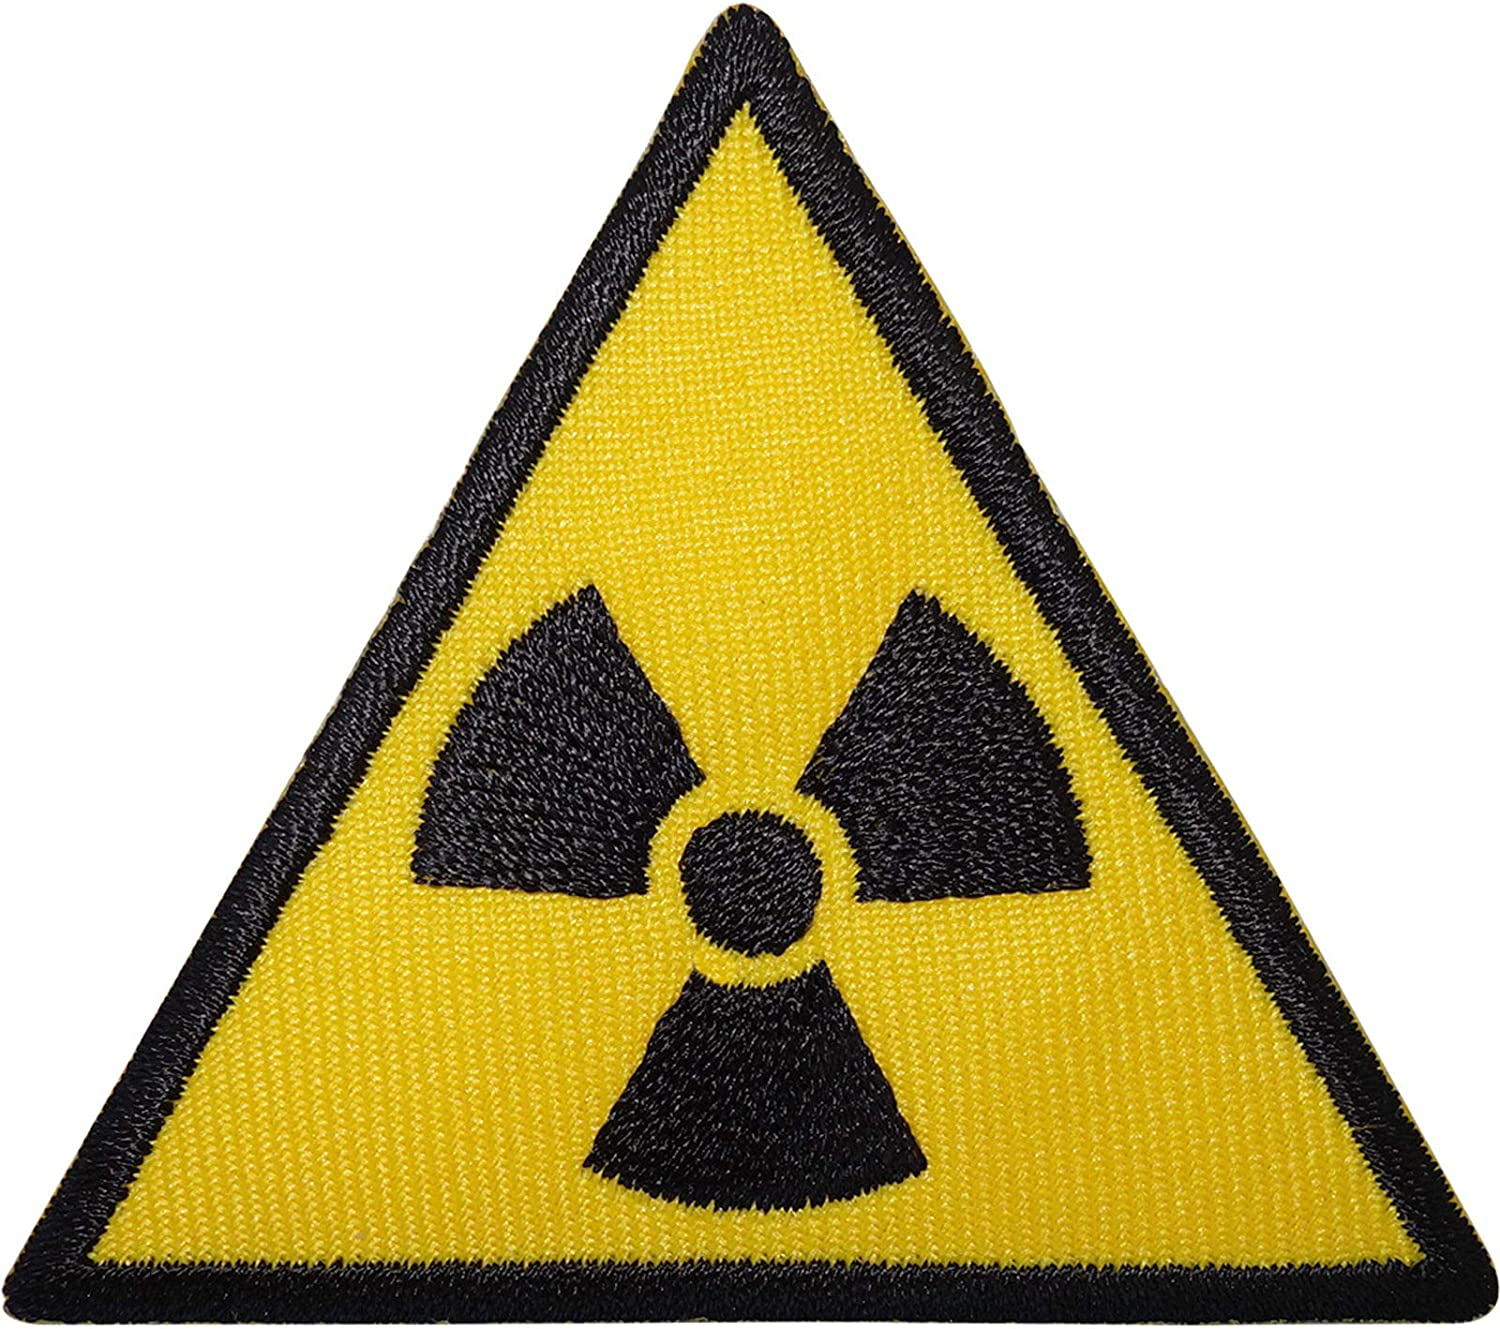 Radioactive Sign Embroidered Iron Minneapolis Mall Sew Patch On Radiation Symbol Deluxe